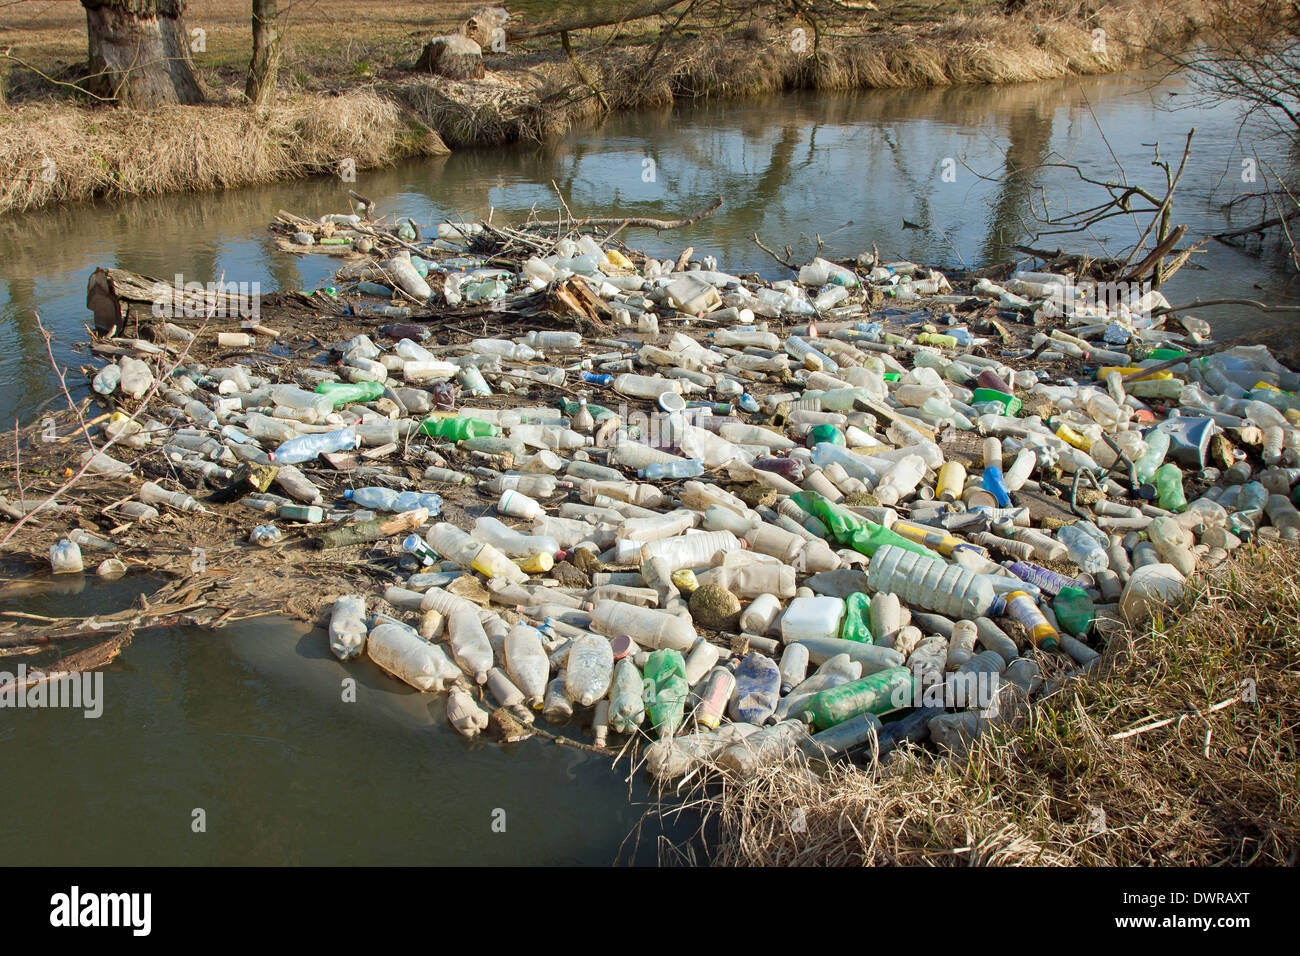 Environmental pollution. Plastic, glass and metal waste in river on early spring - Stock Image